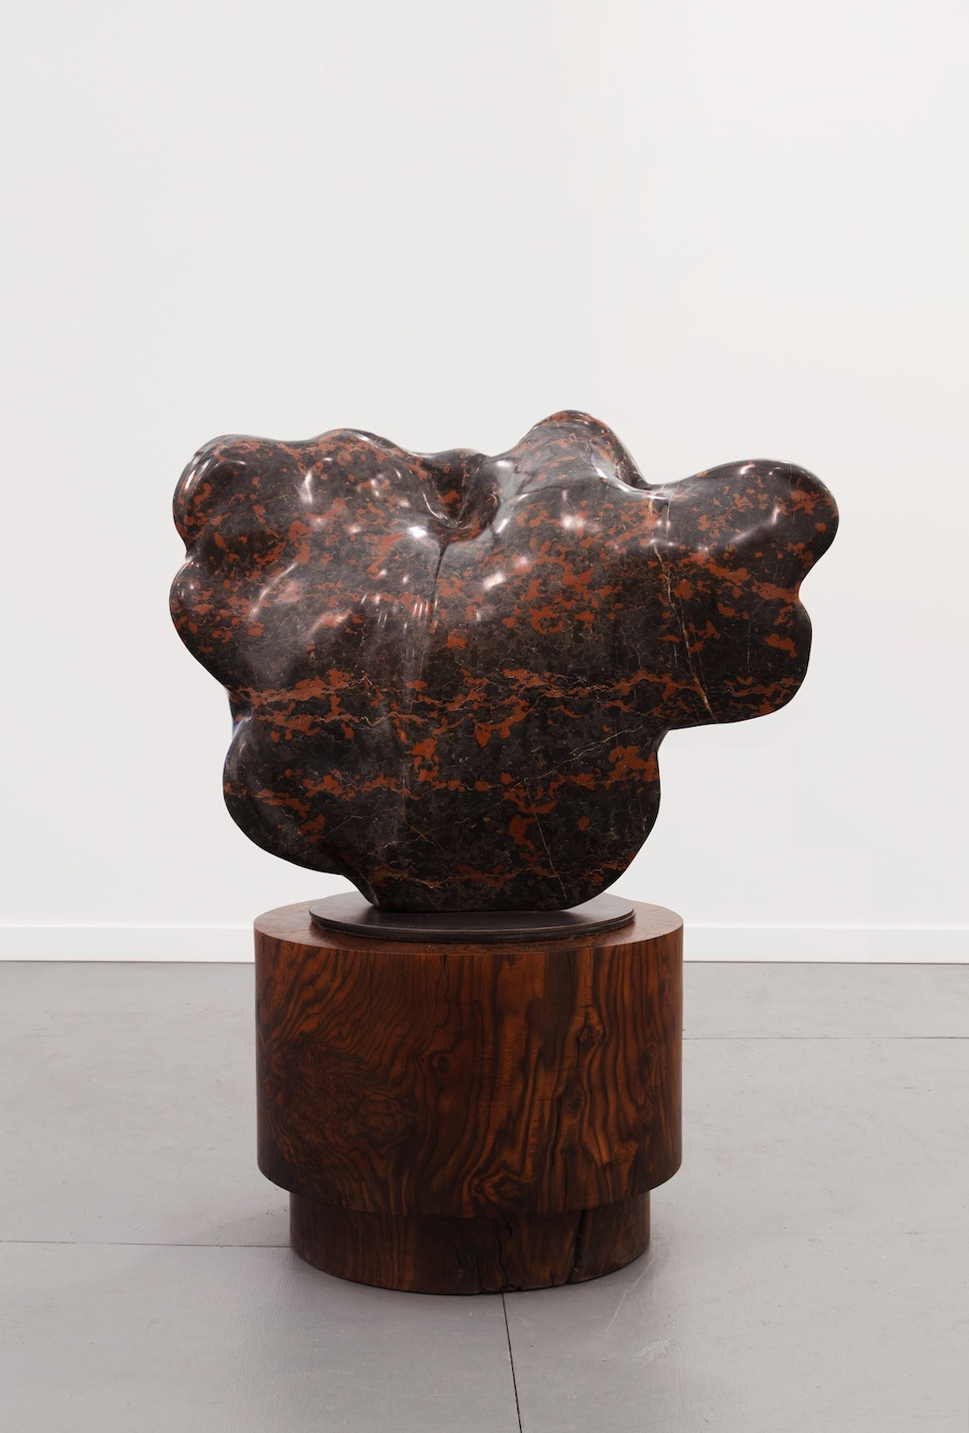 Alma Allen  Untitled  2014 Black marble with wooden base 52h x 35w x 24d in AA020